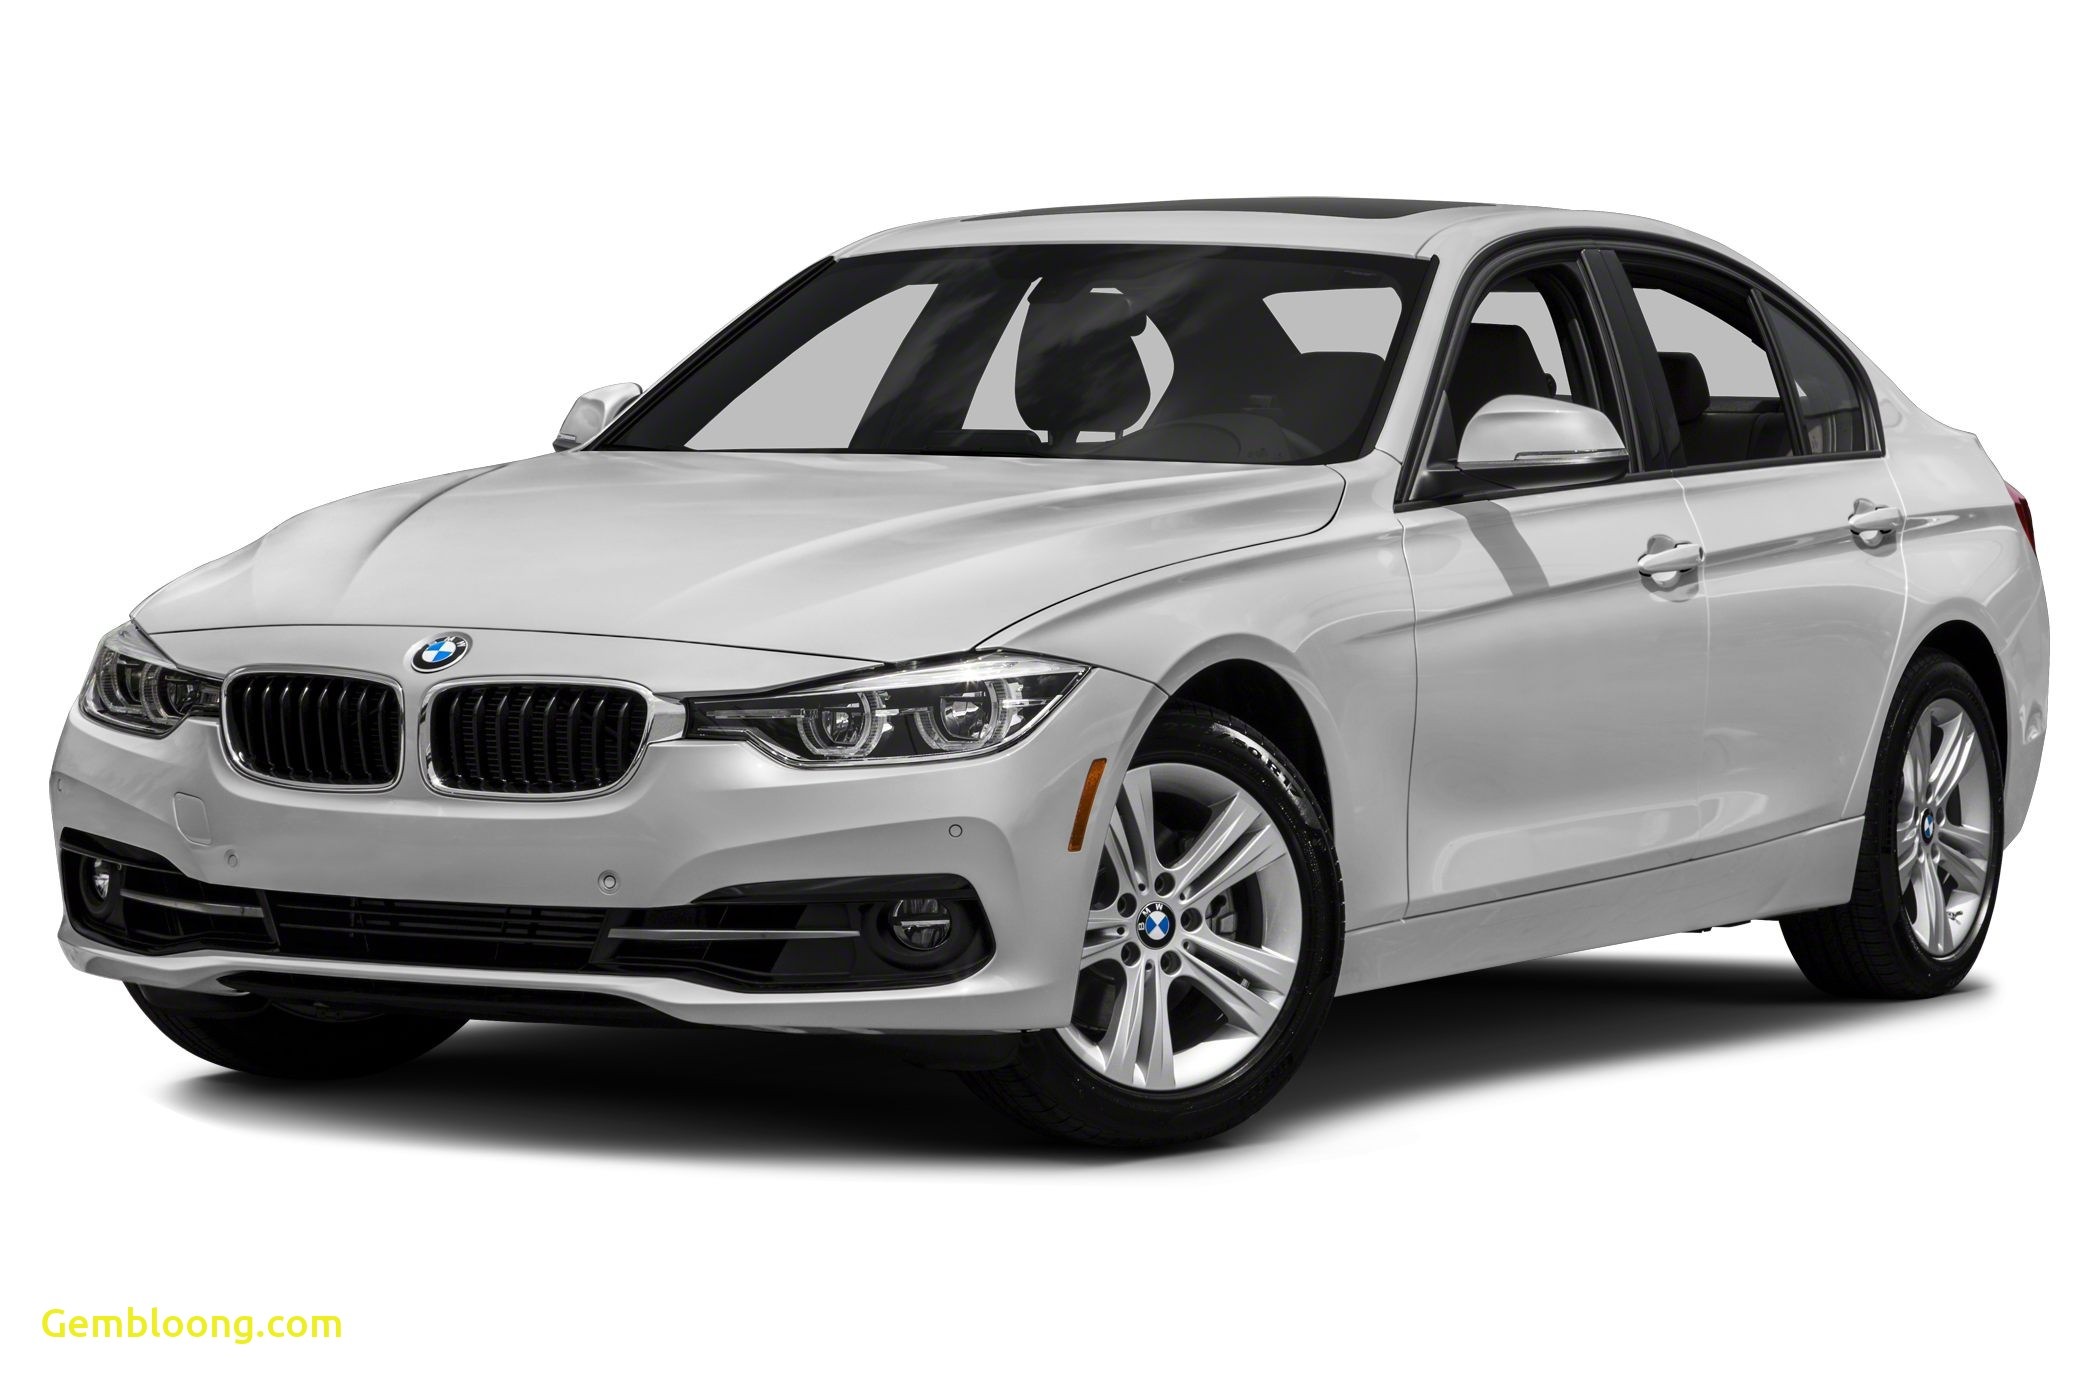 2013 Bmw 328i Xdrive Beautiful 2016 Bmw 328 Specs and Prices